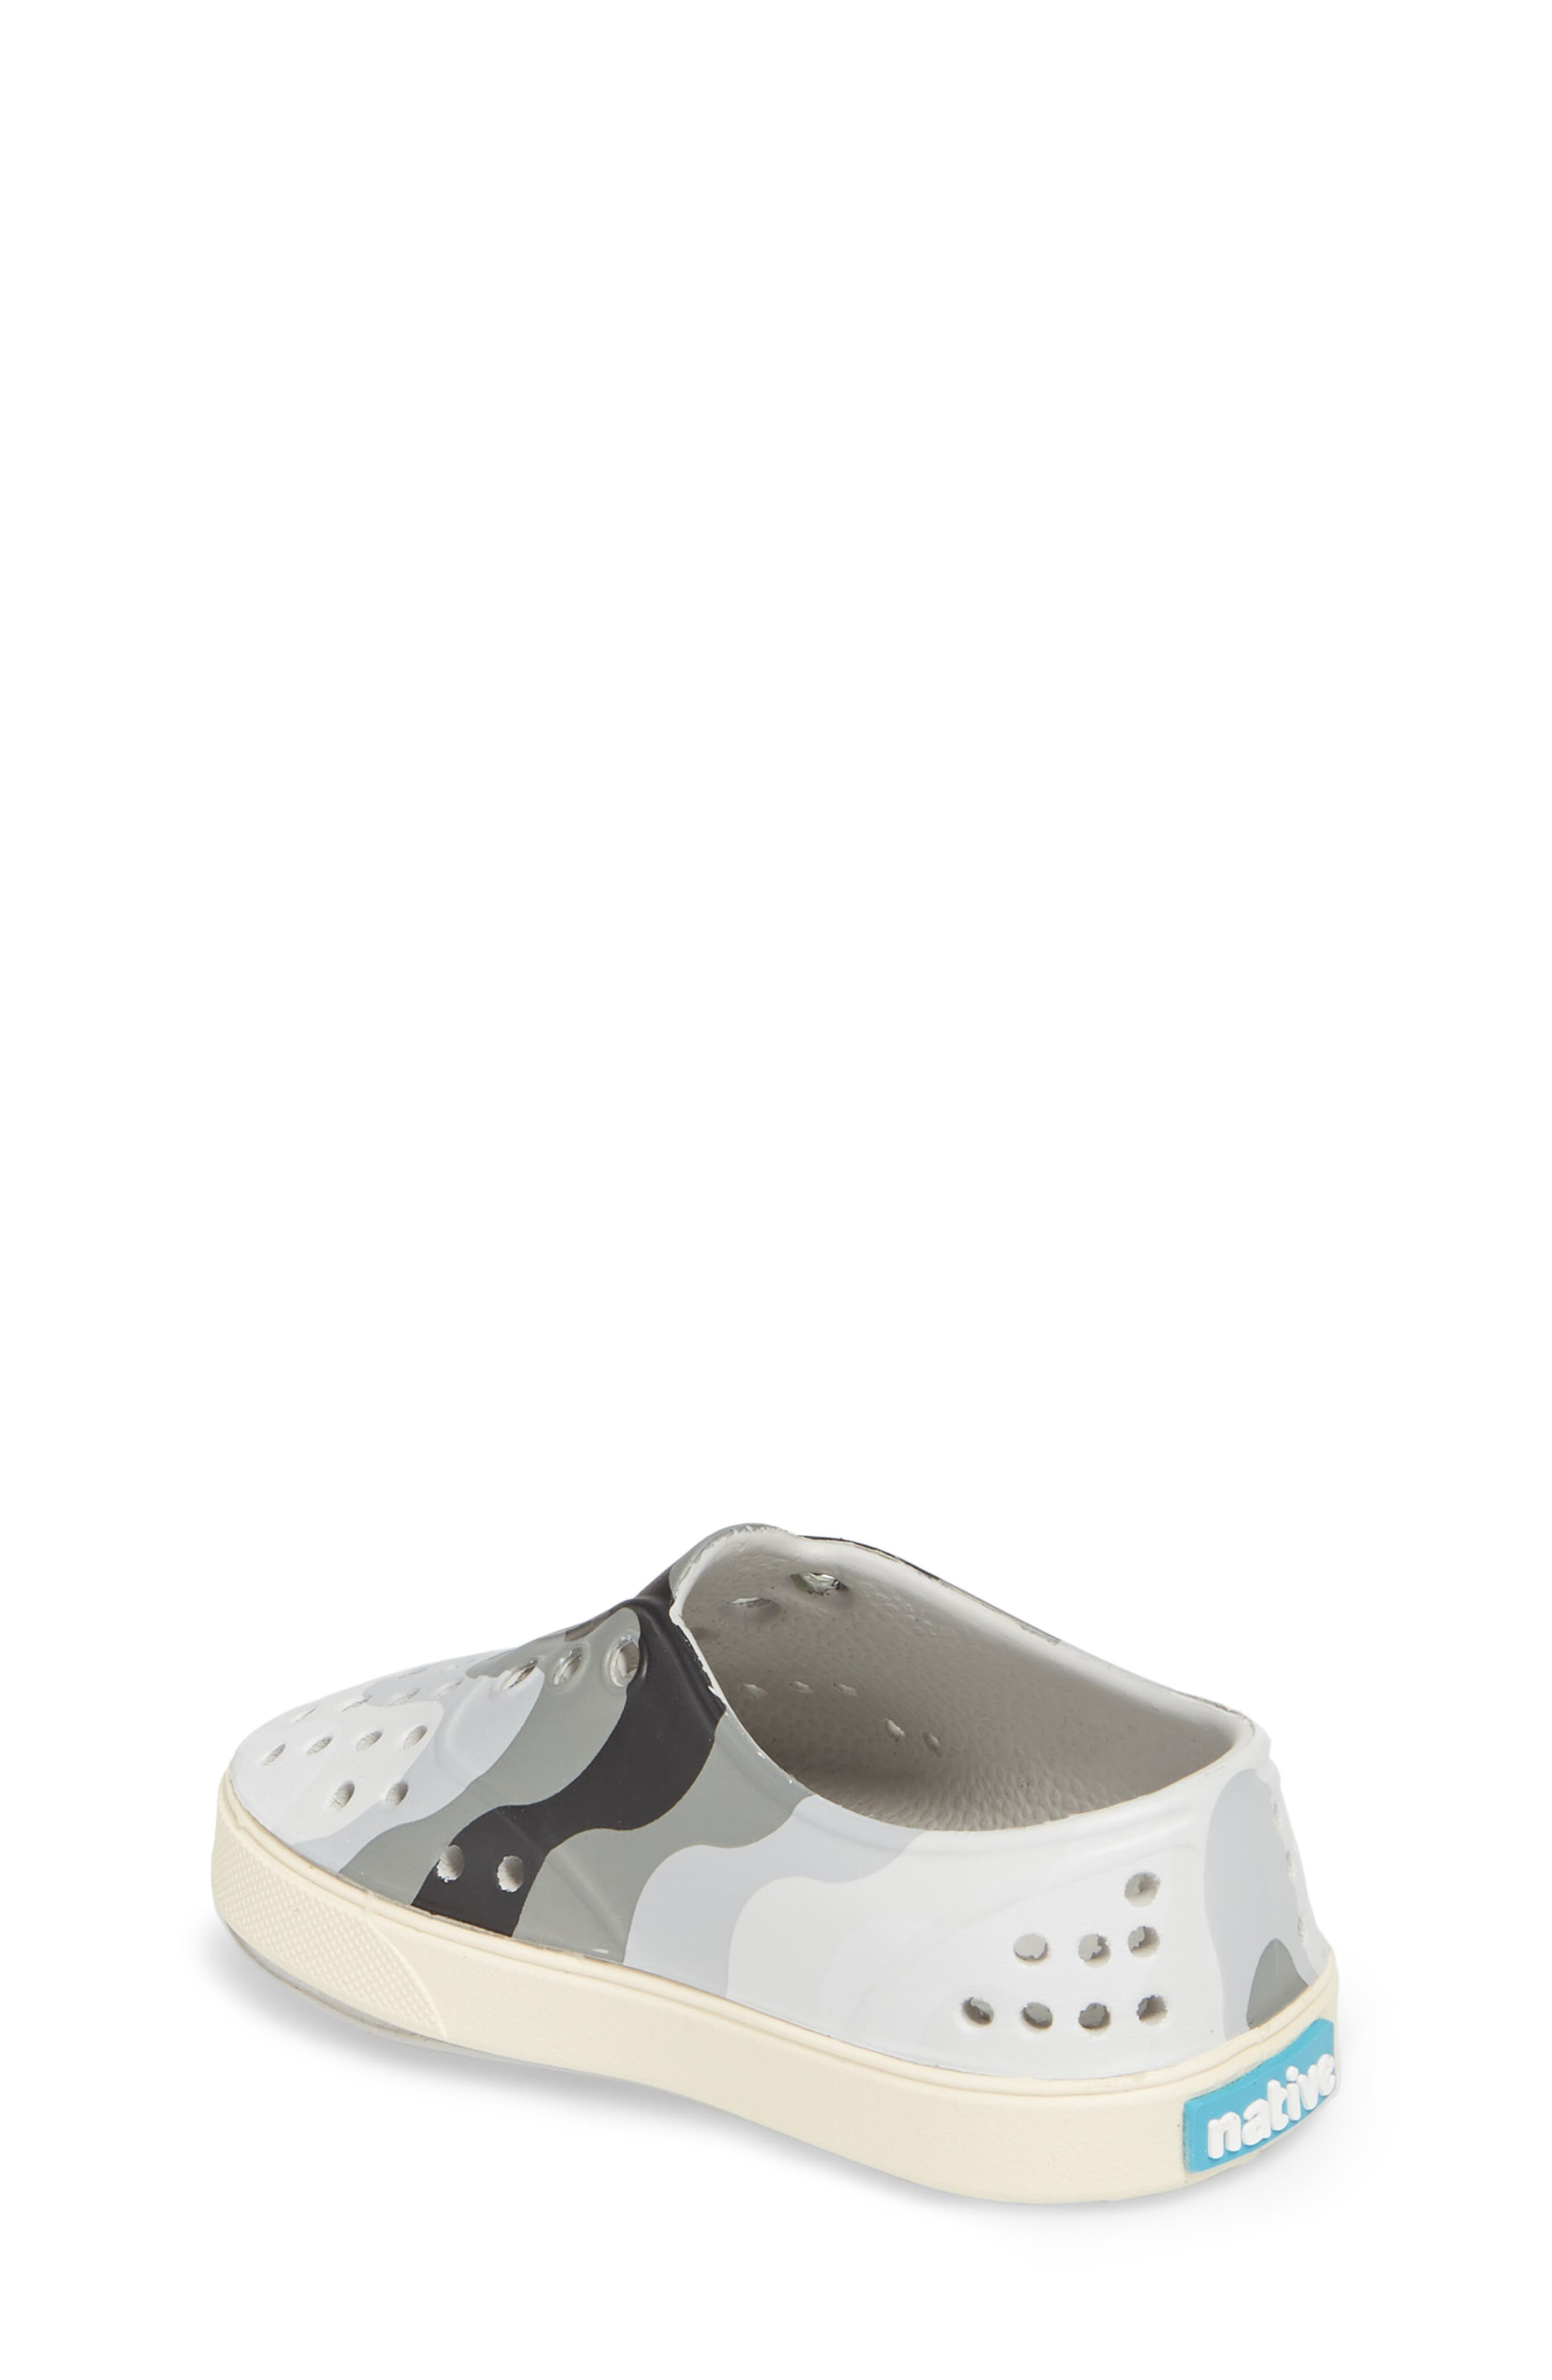 NATIVE SHOES,                             'Miller' Water Friendly Perforated Sneaker,                             Alternate thumbnail 2, color,                             022